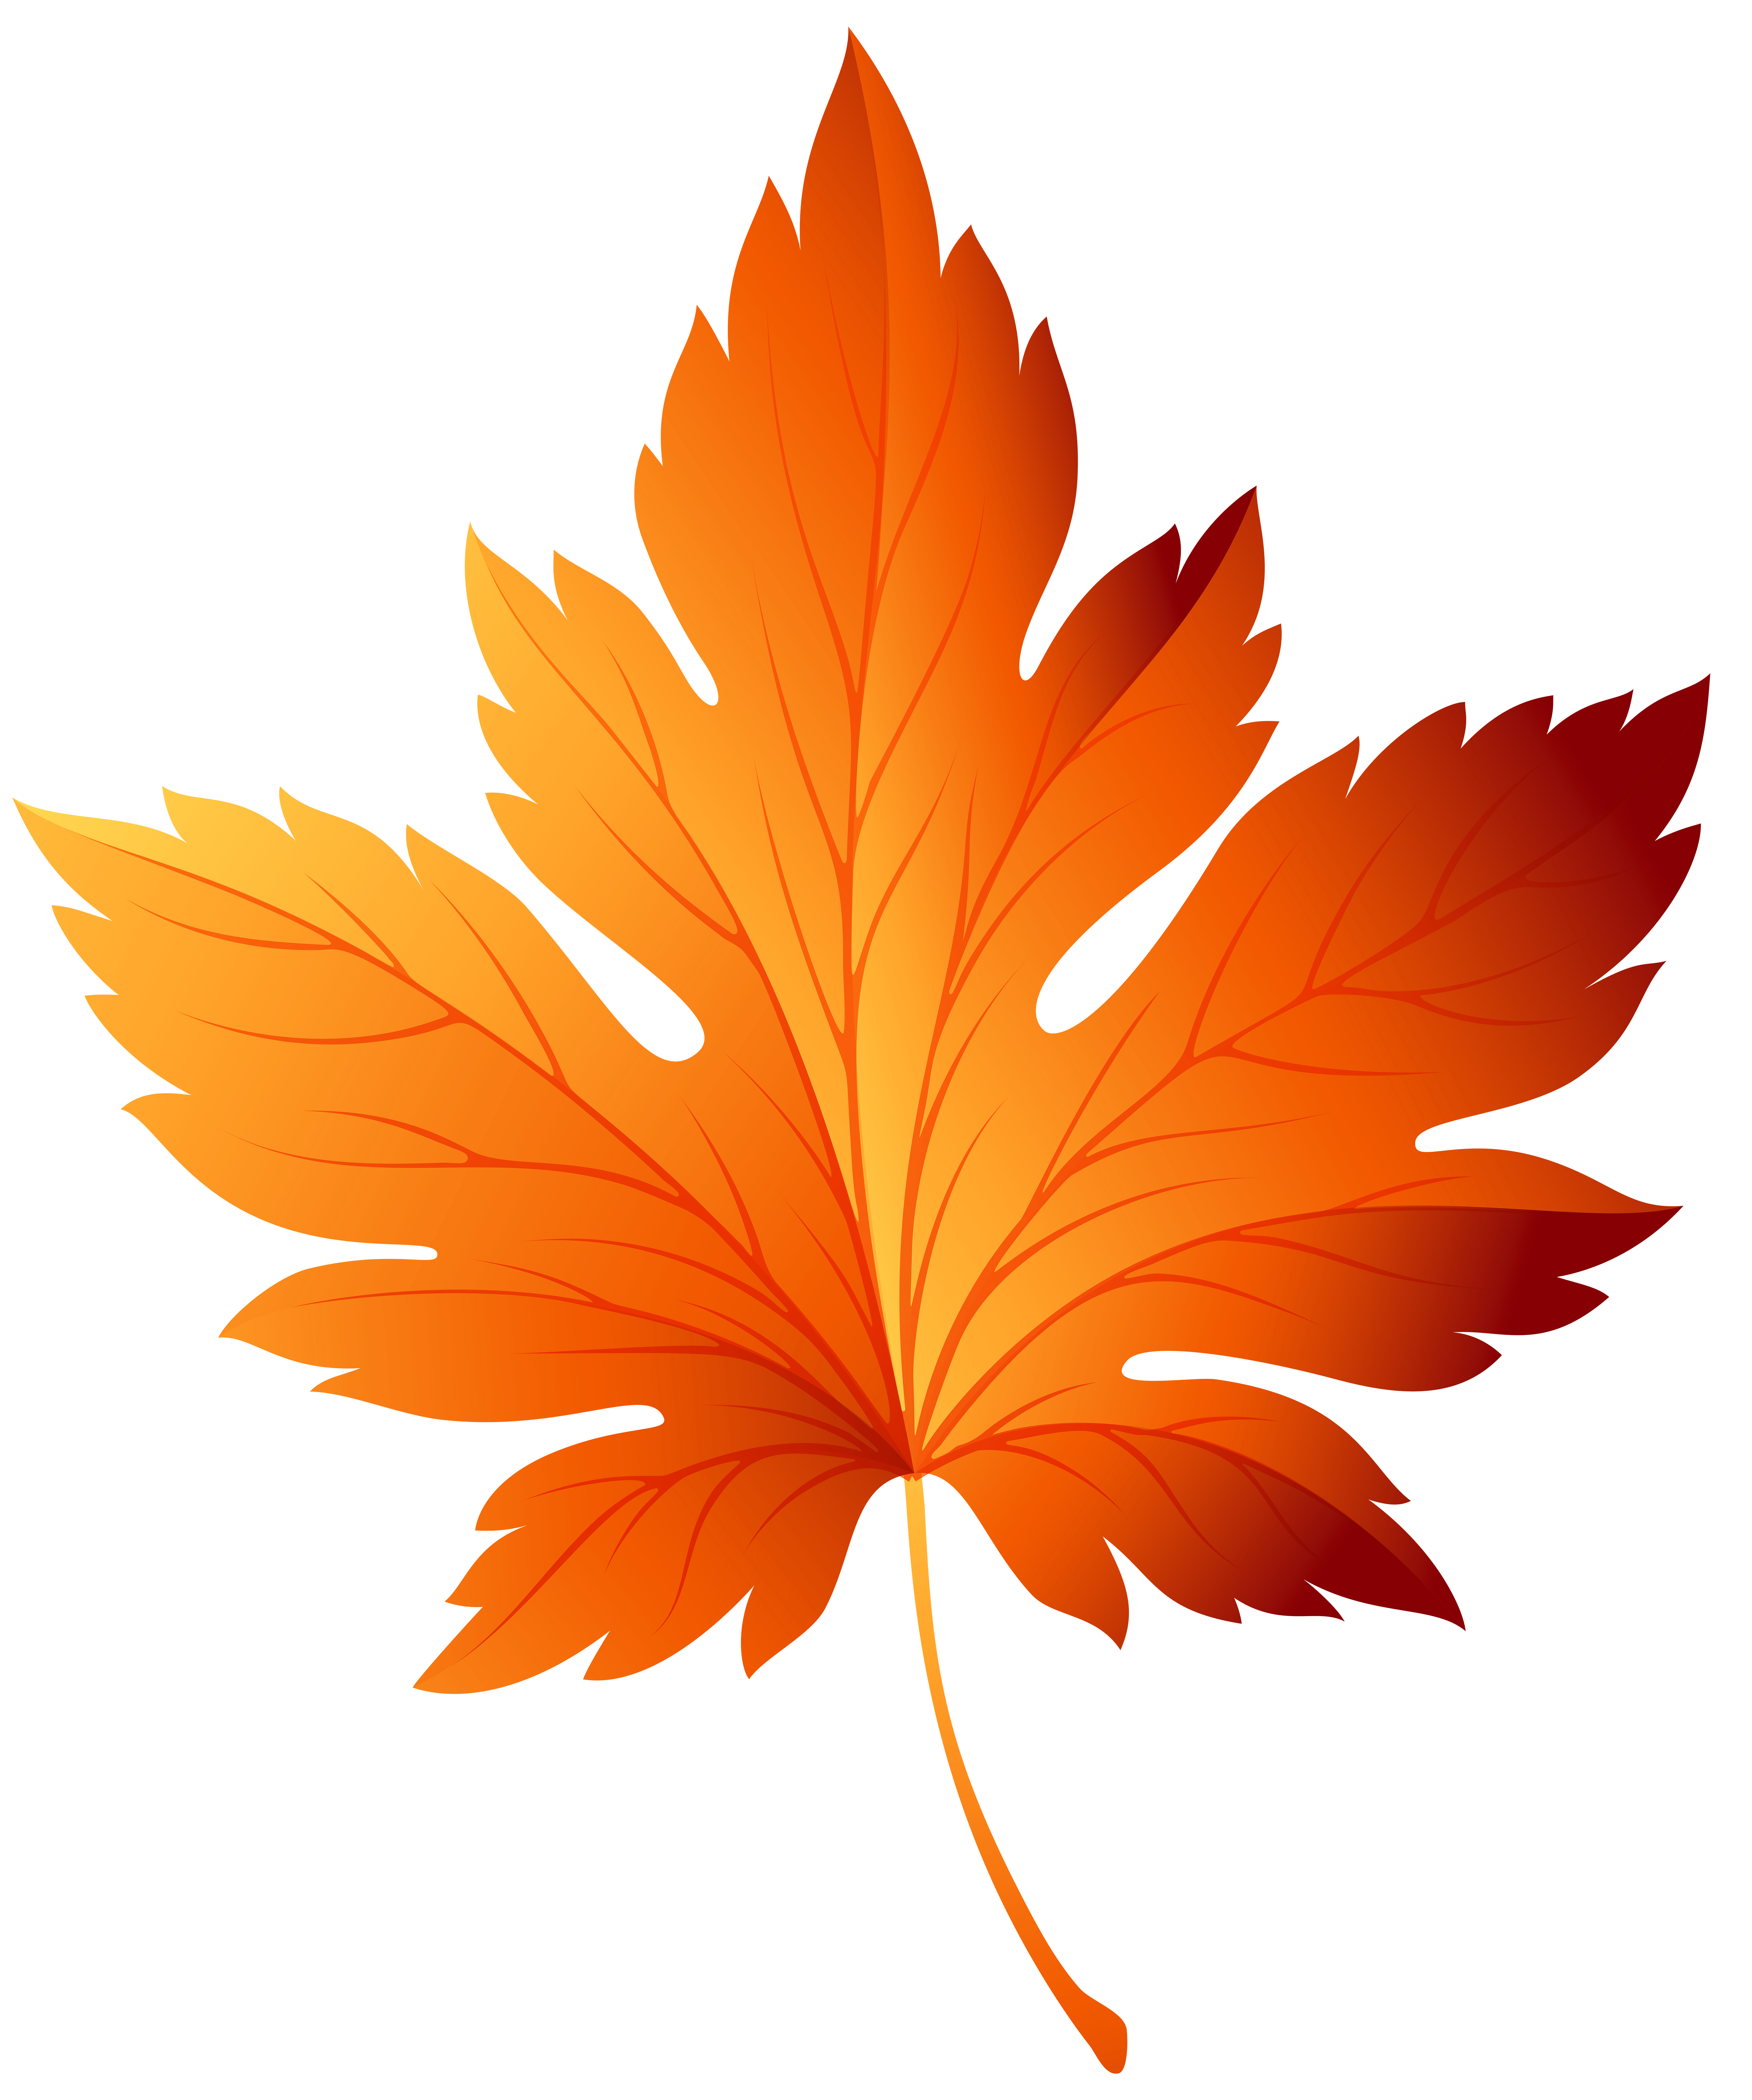 Autumn heart clipart clipart royalty free Autumn Leaf Transparent PNG Clip Art Image | Gallery Yopriceville ... clipart royalty free